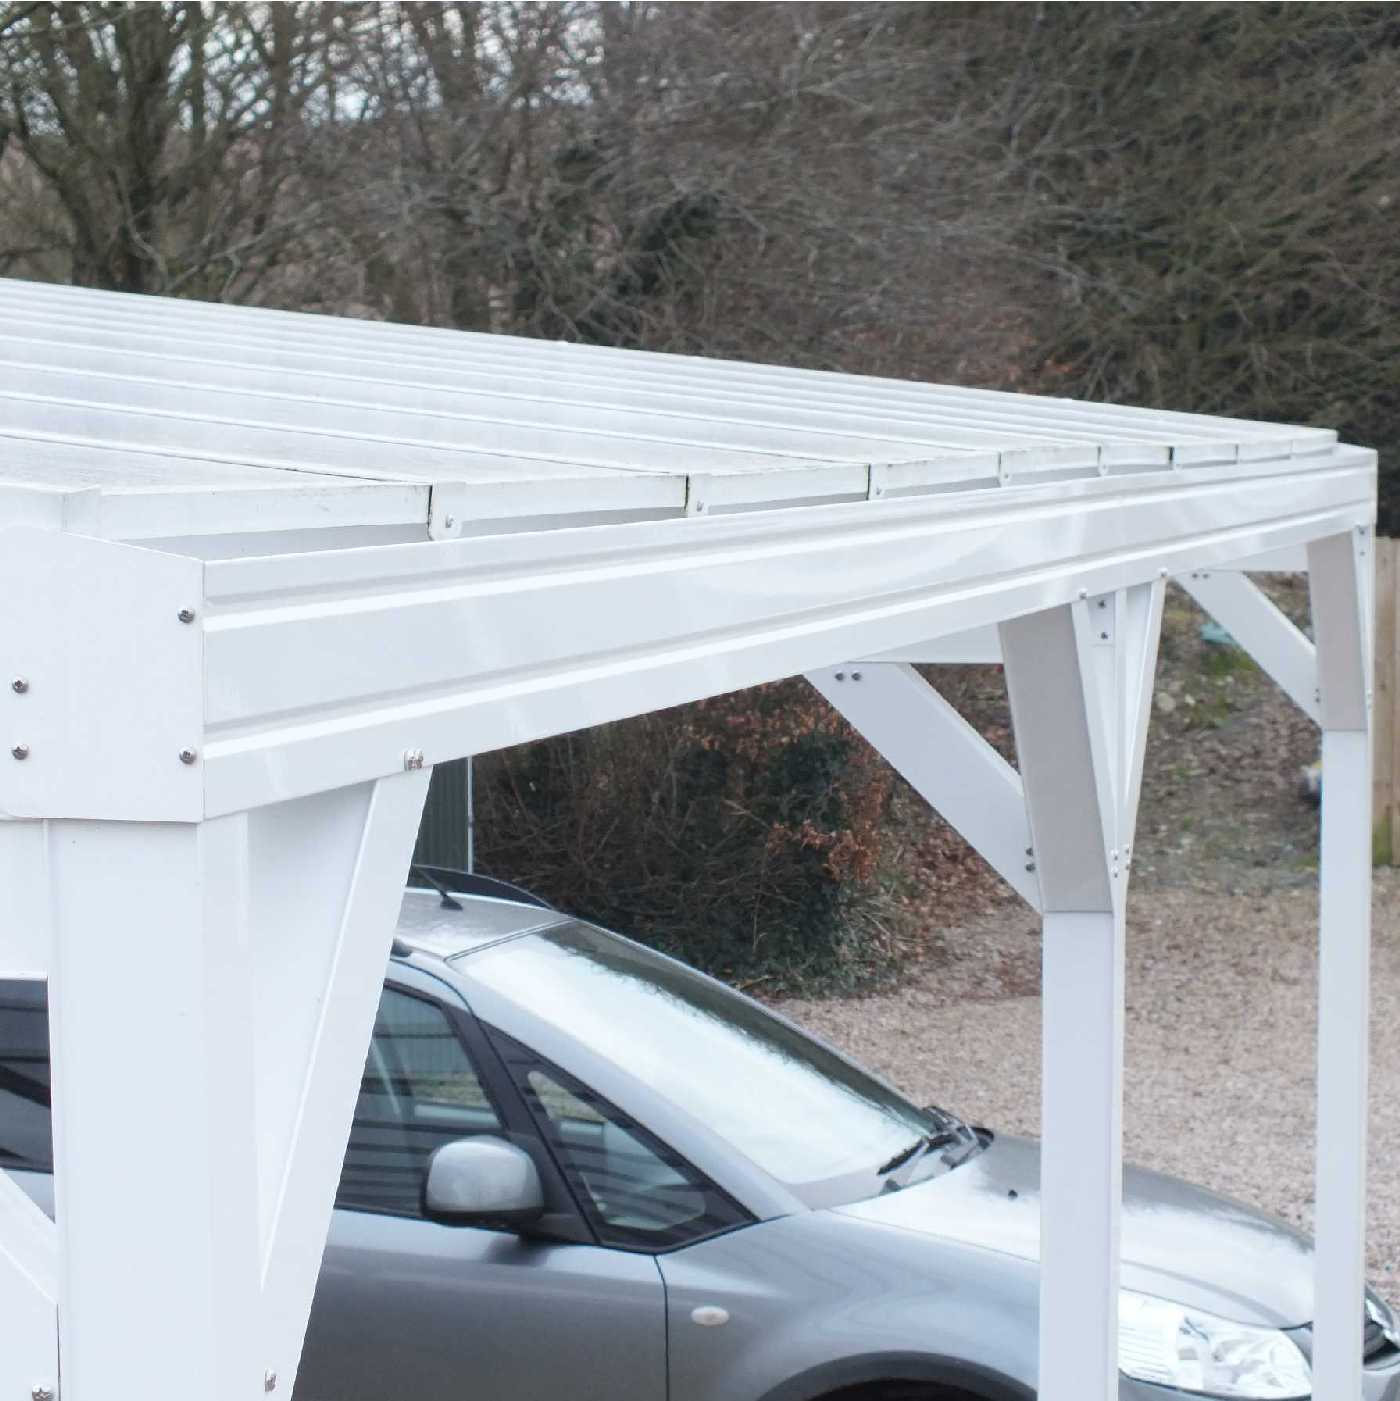 Omega Smart Free-Standing, MonoPitch Roof Canopy with 16mm Polycarbonate Glazing - 6.3m (W) x 3.5m (P), (8) Supporting Posts from Omega Build